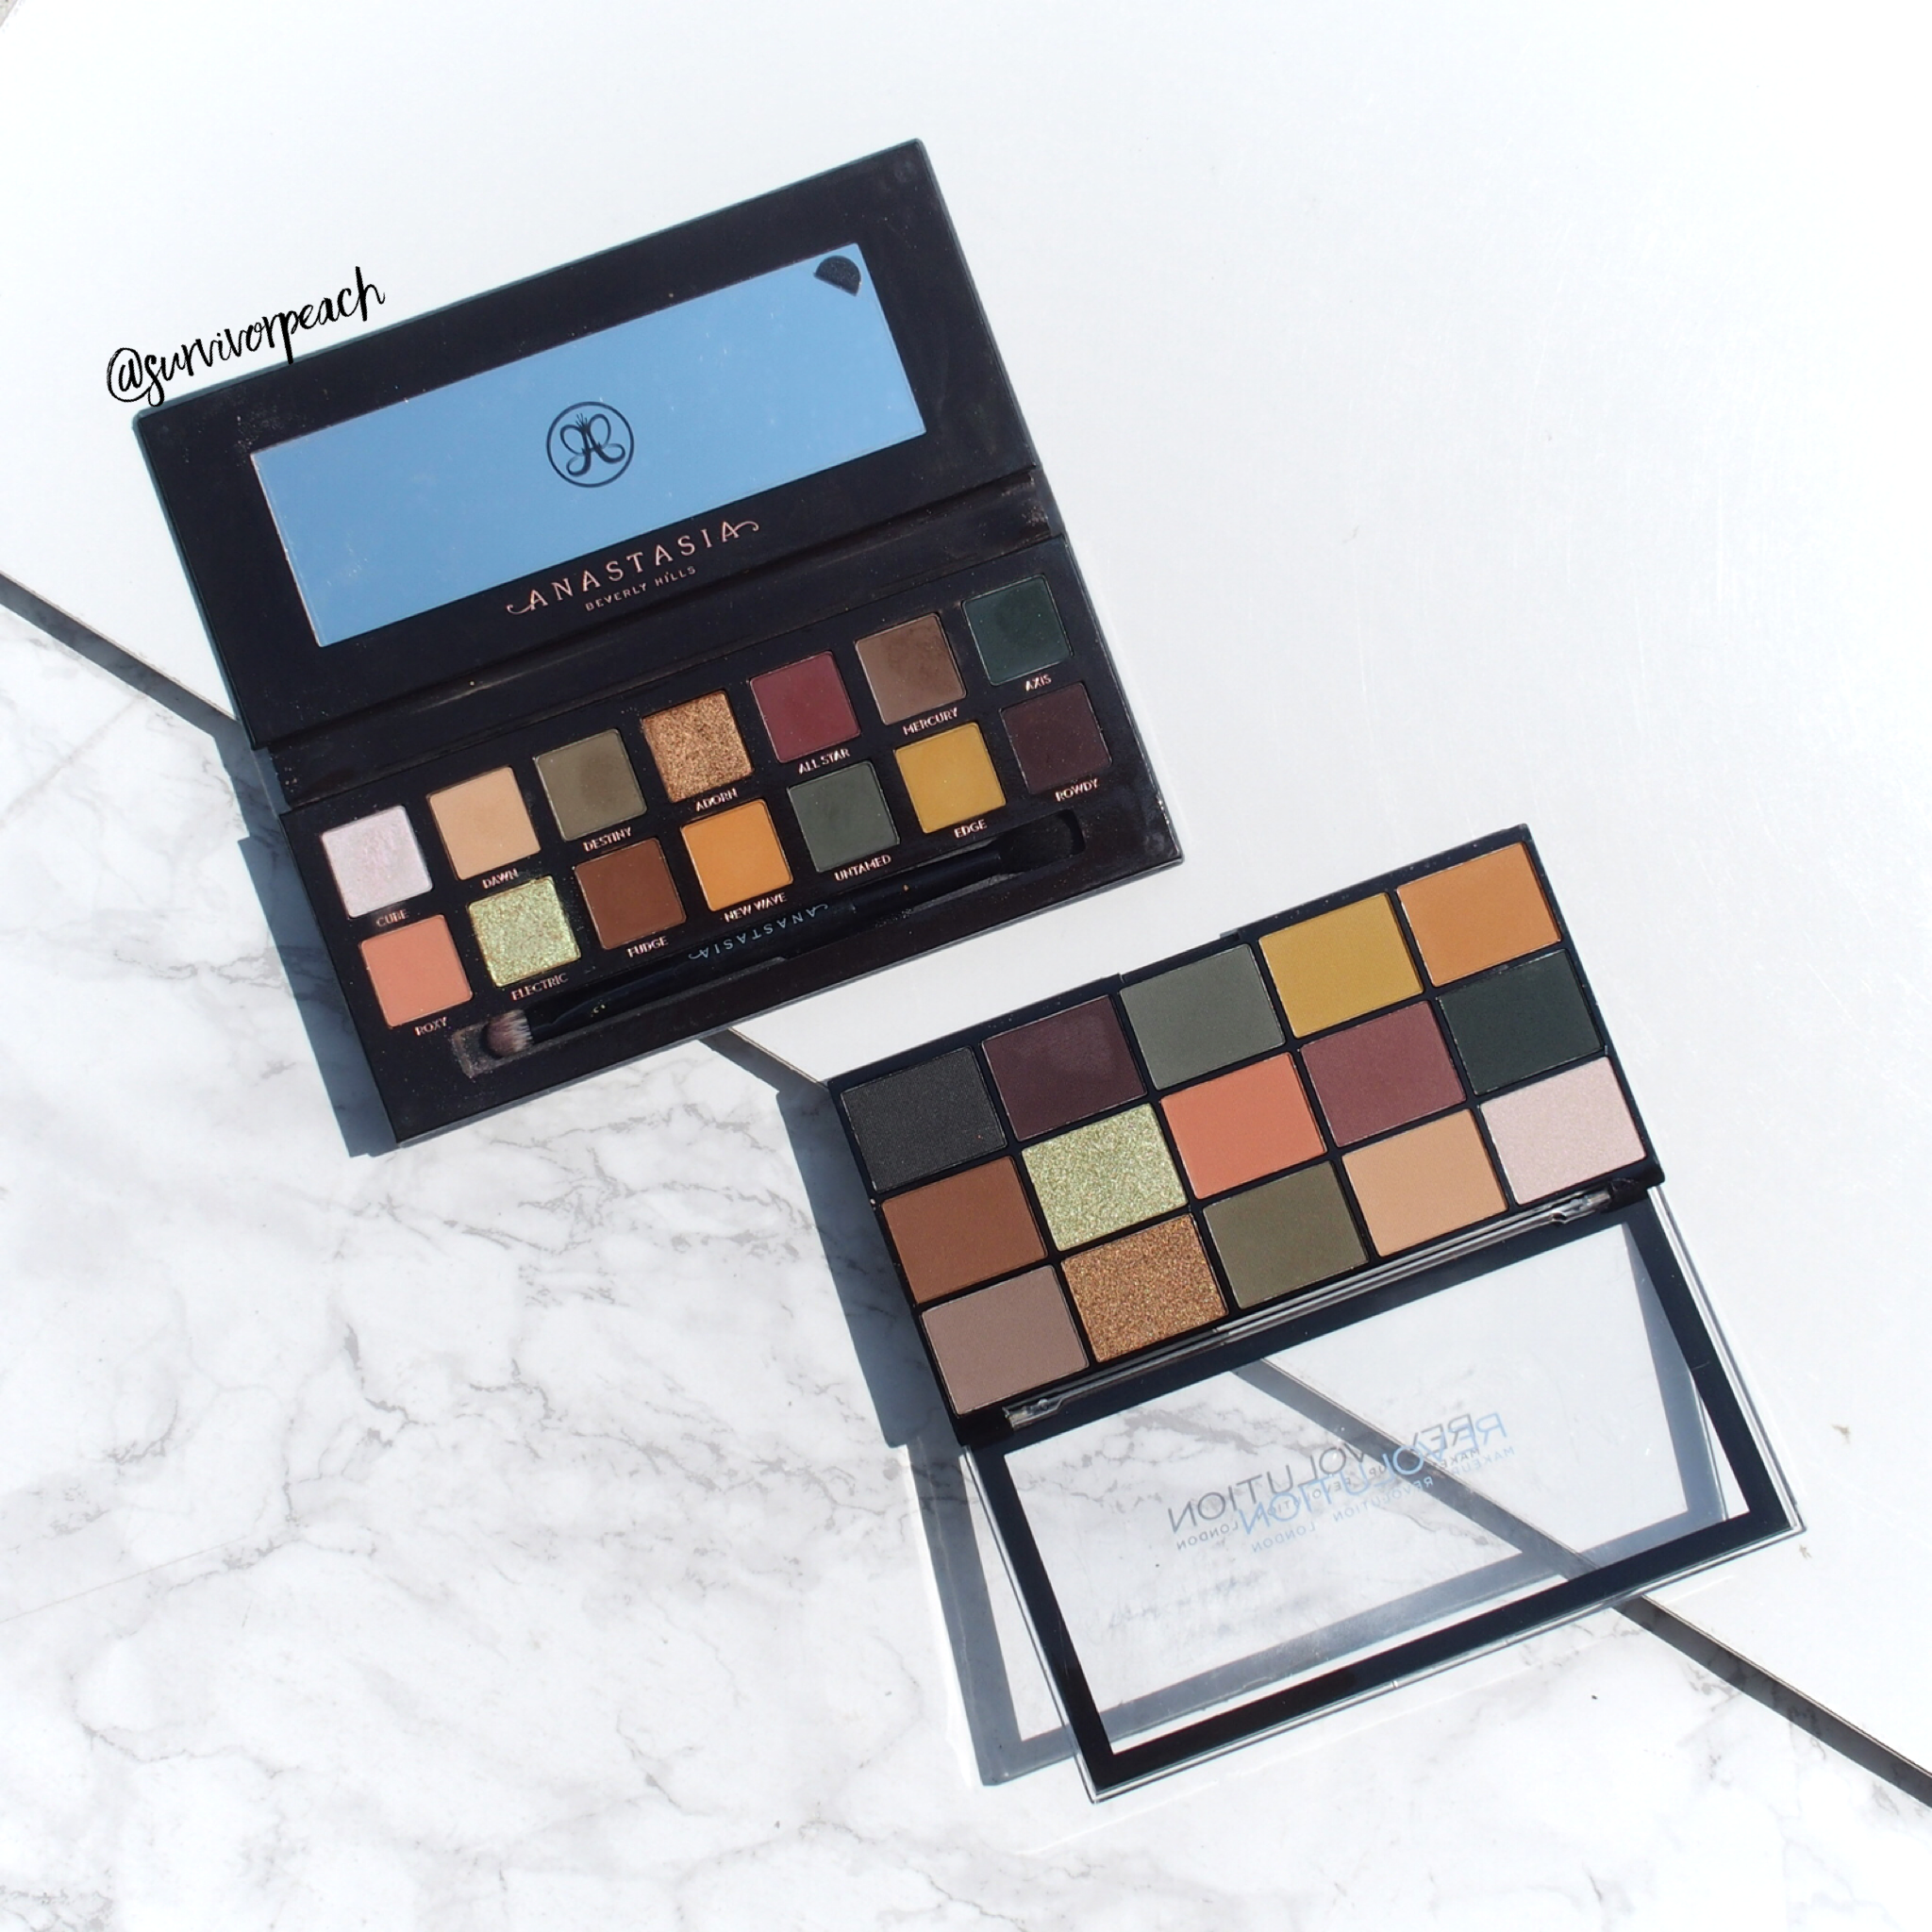 Revolution Re-loaded paletteIconic Division & Anastasia Subculture palette